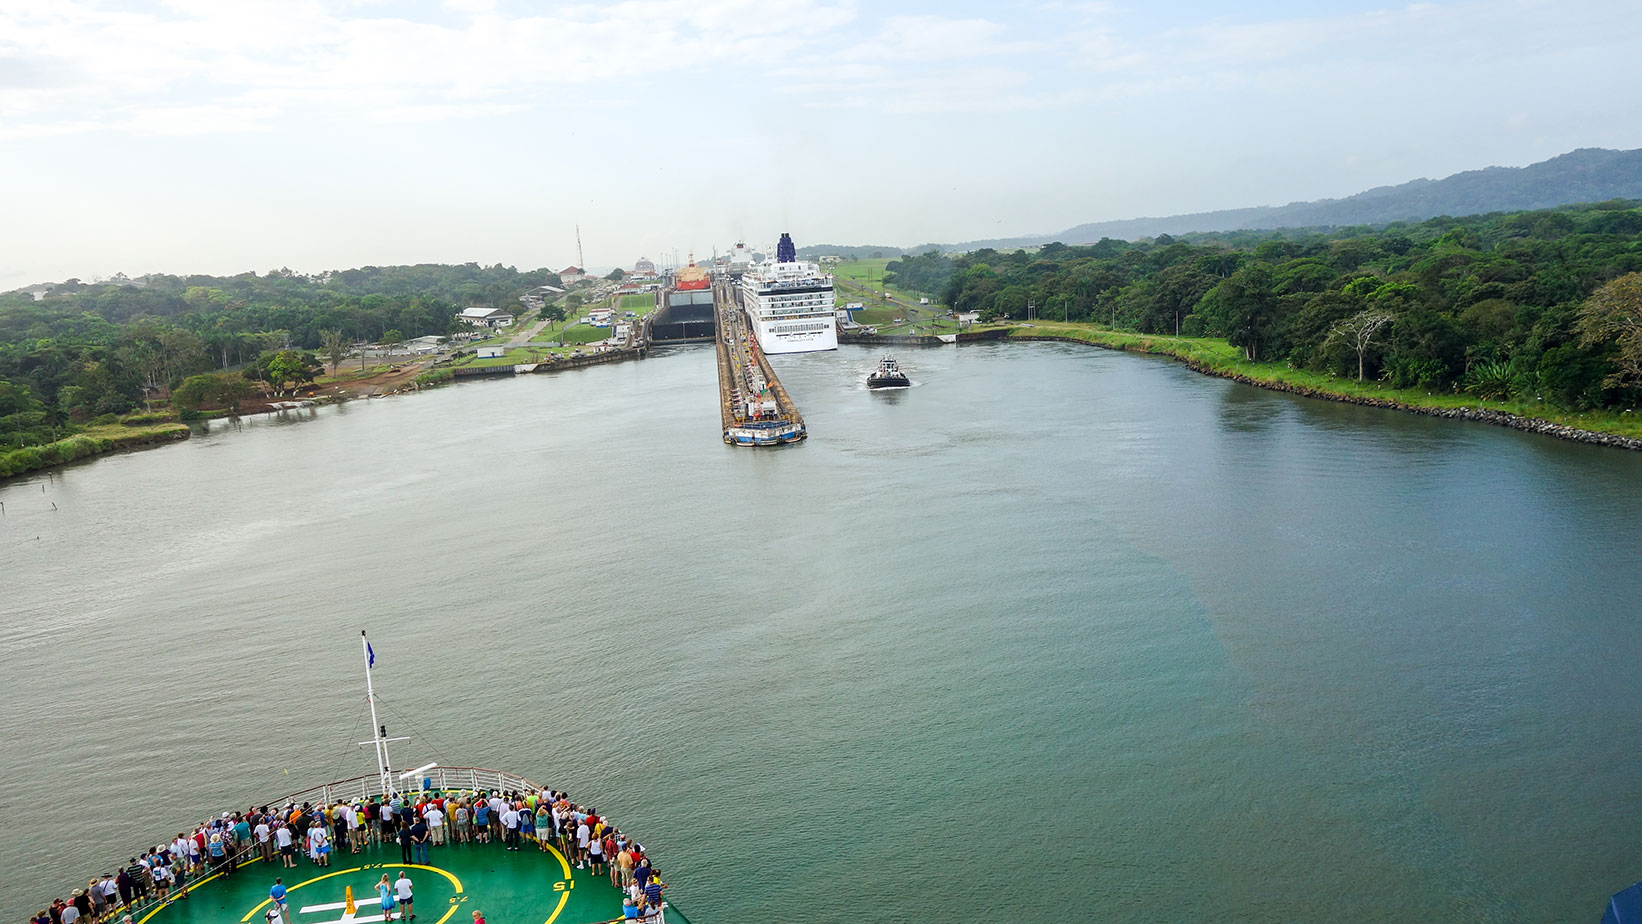 The Panama Cruise